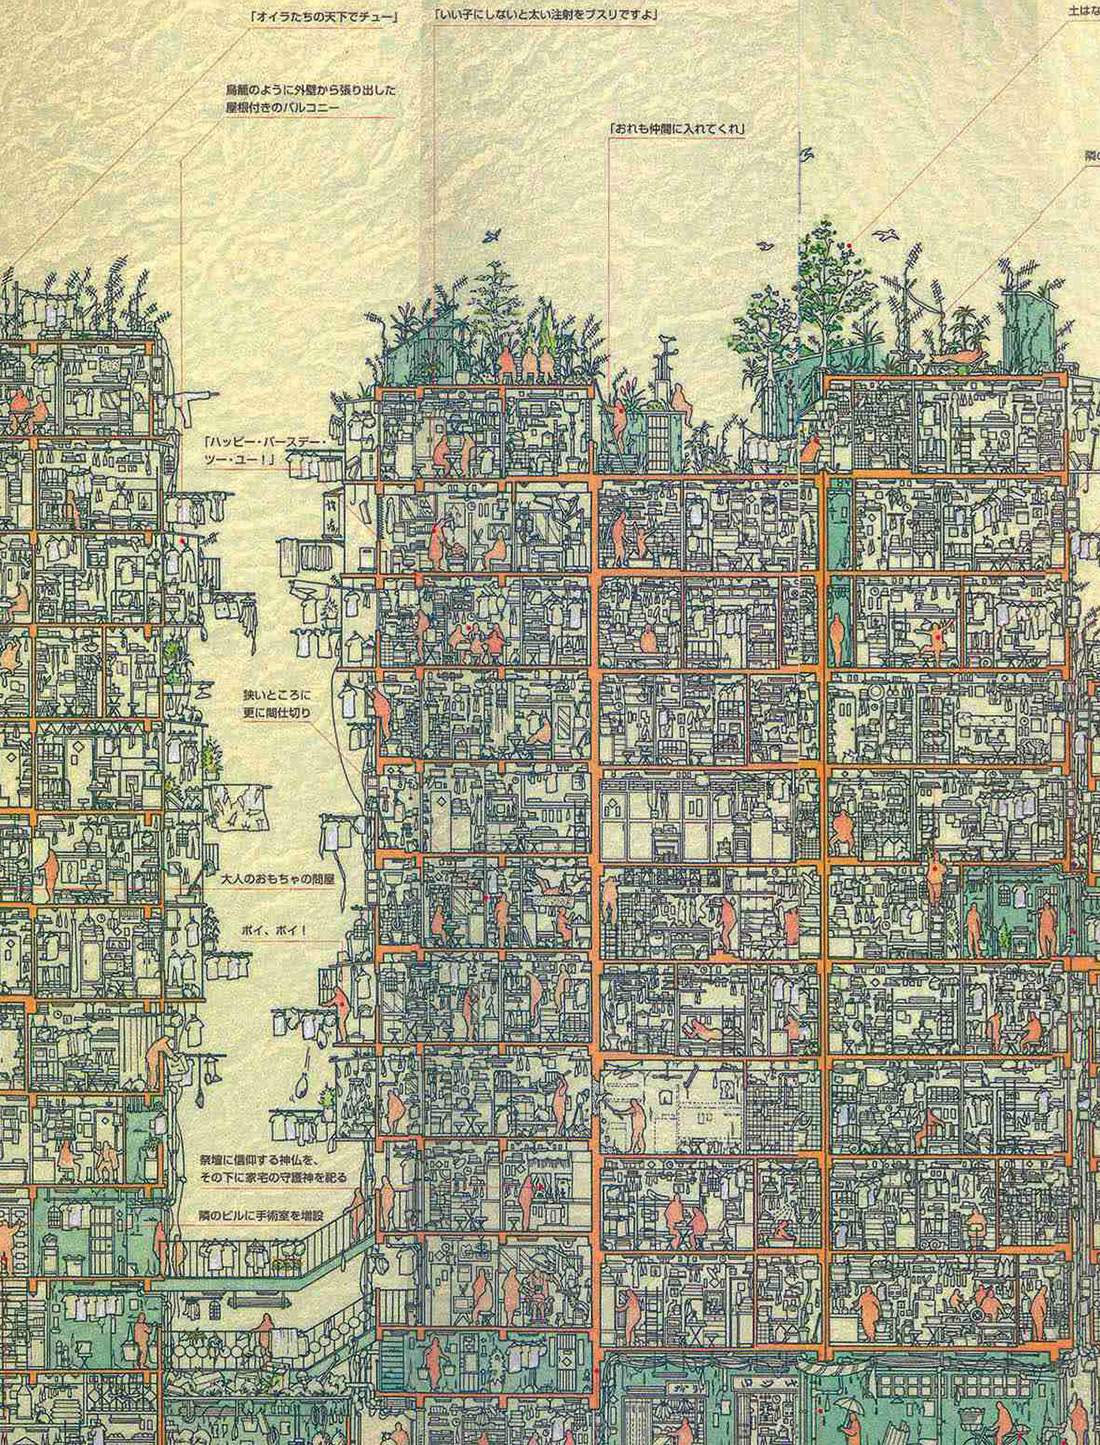 Kowloon Walled City 28